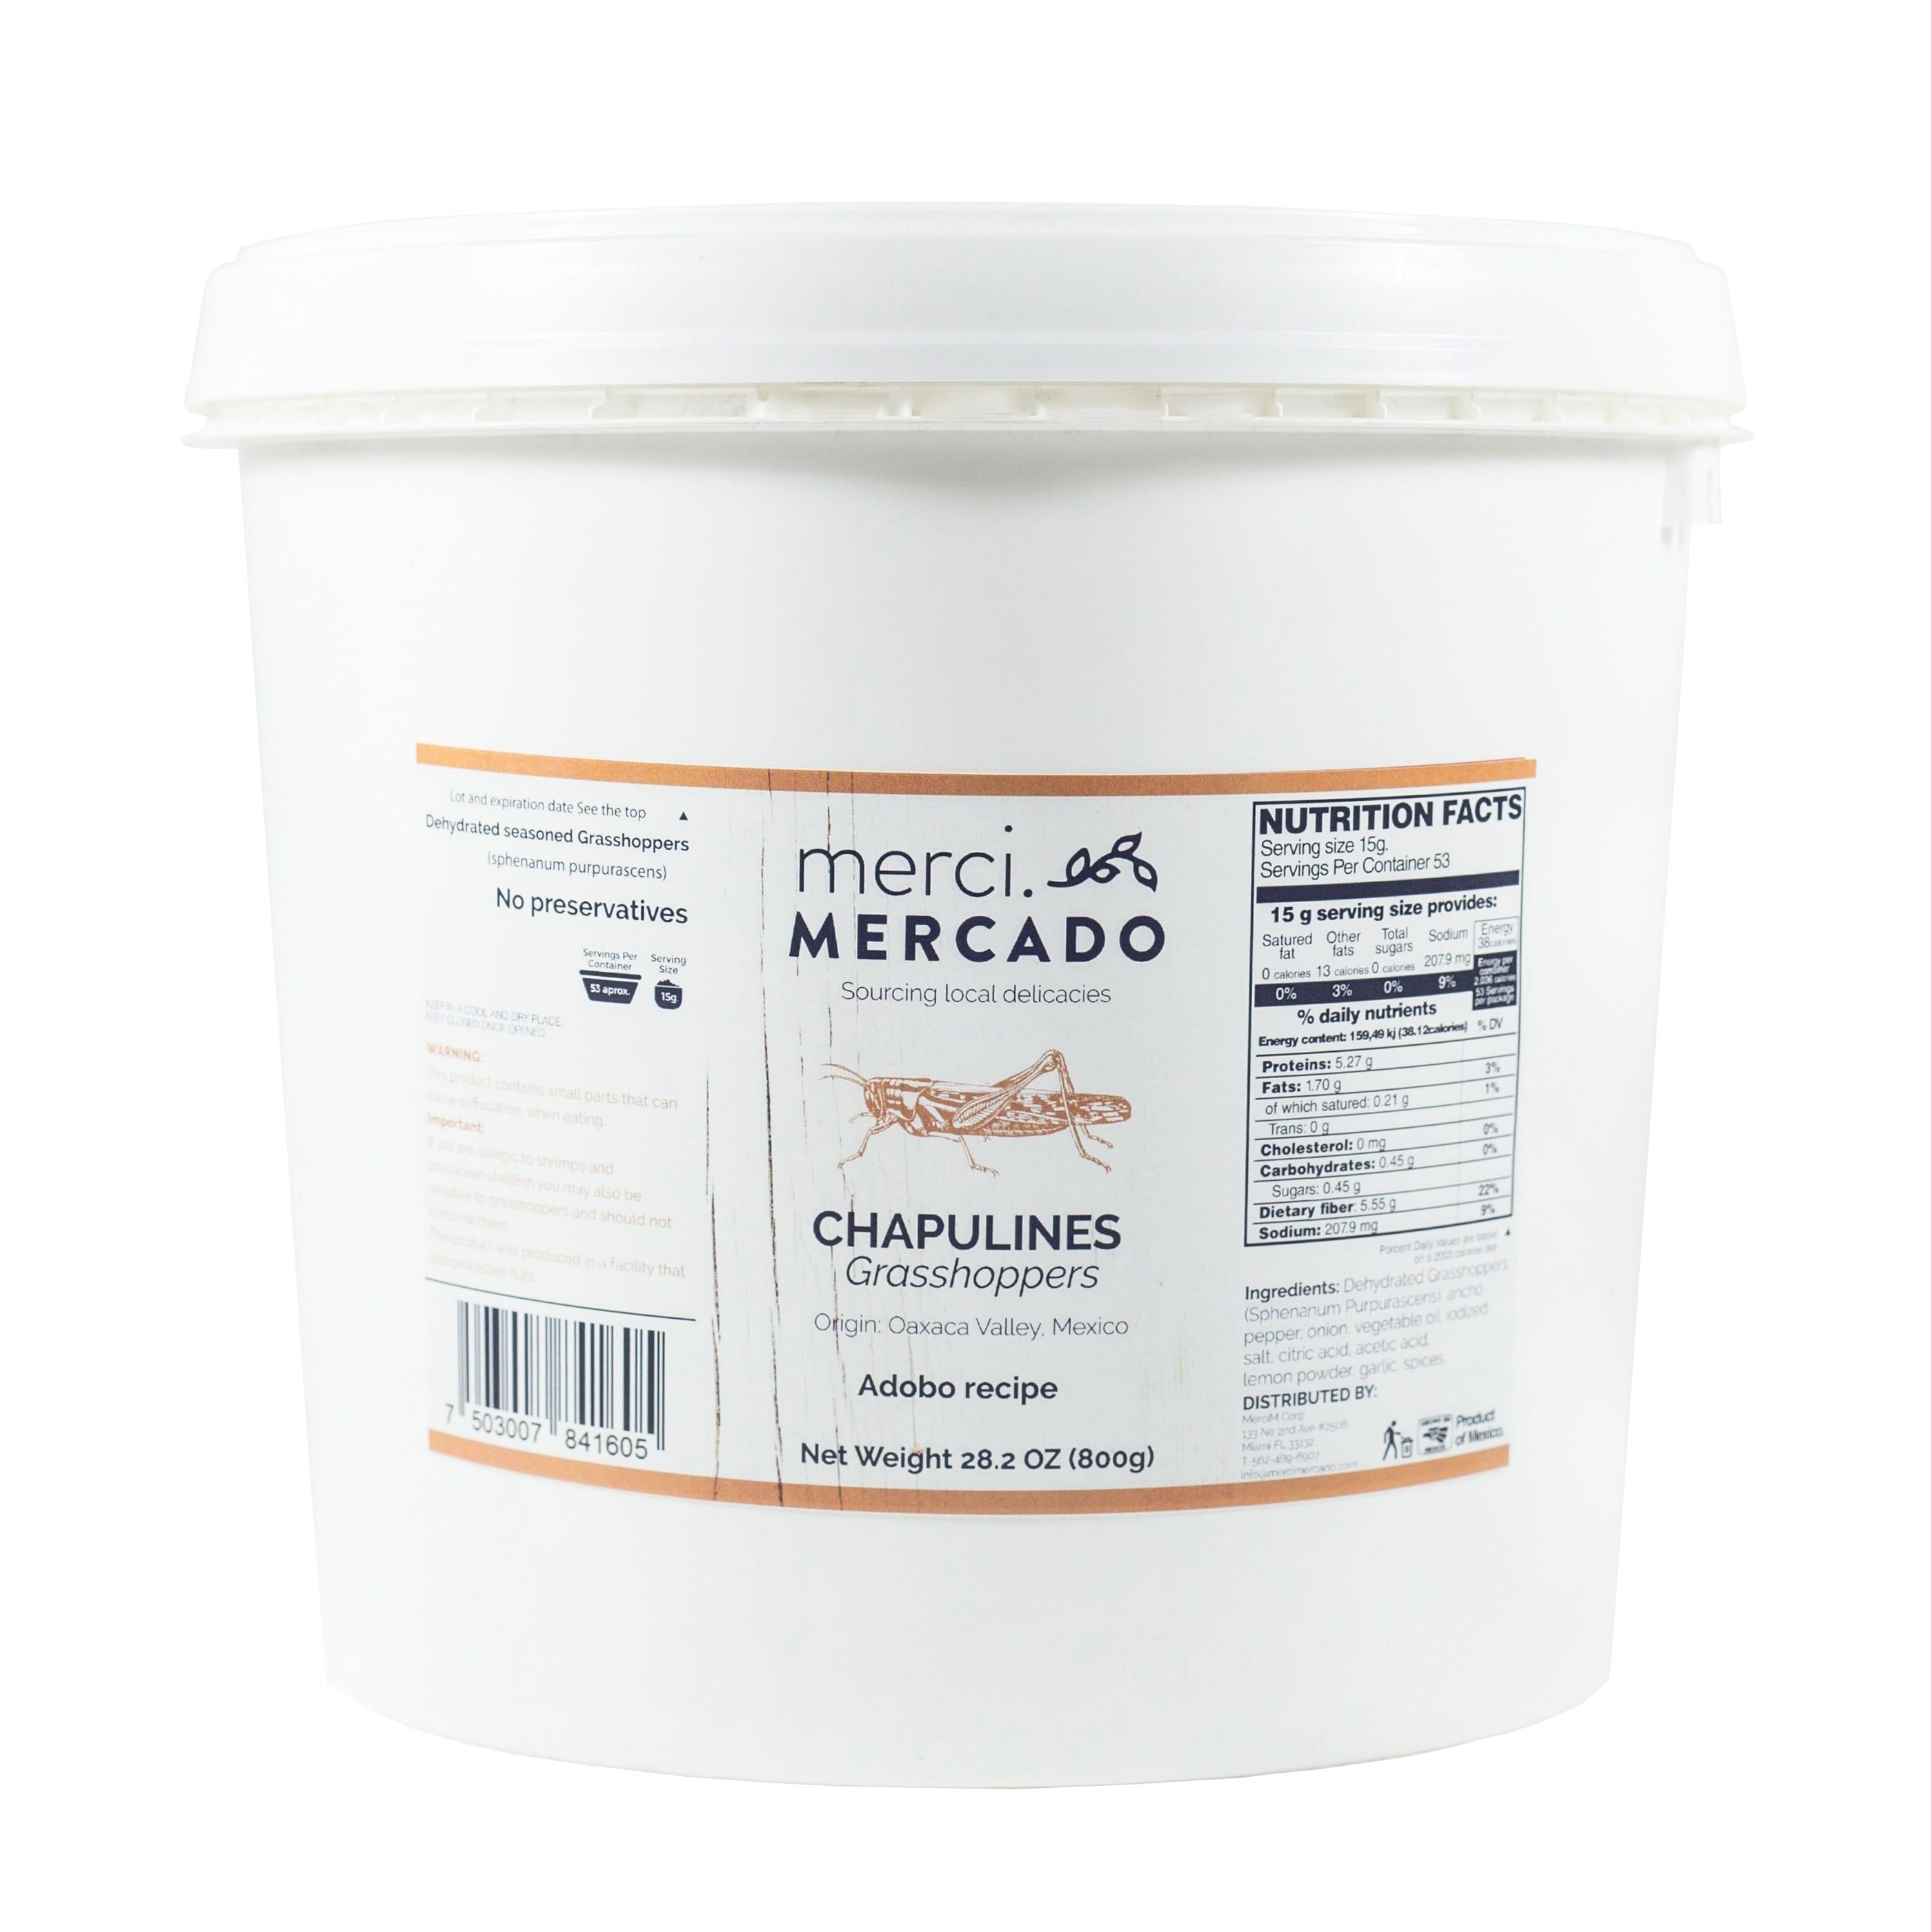 MerciMercado Chapulines Adobo Recipe 28.2 Oz